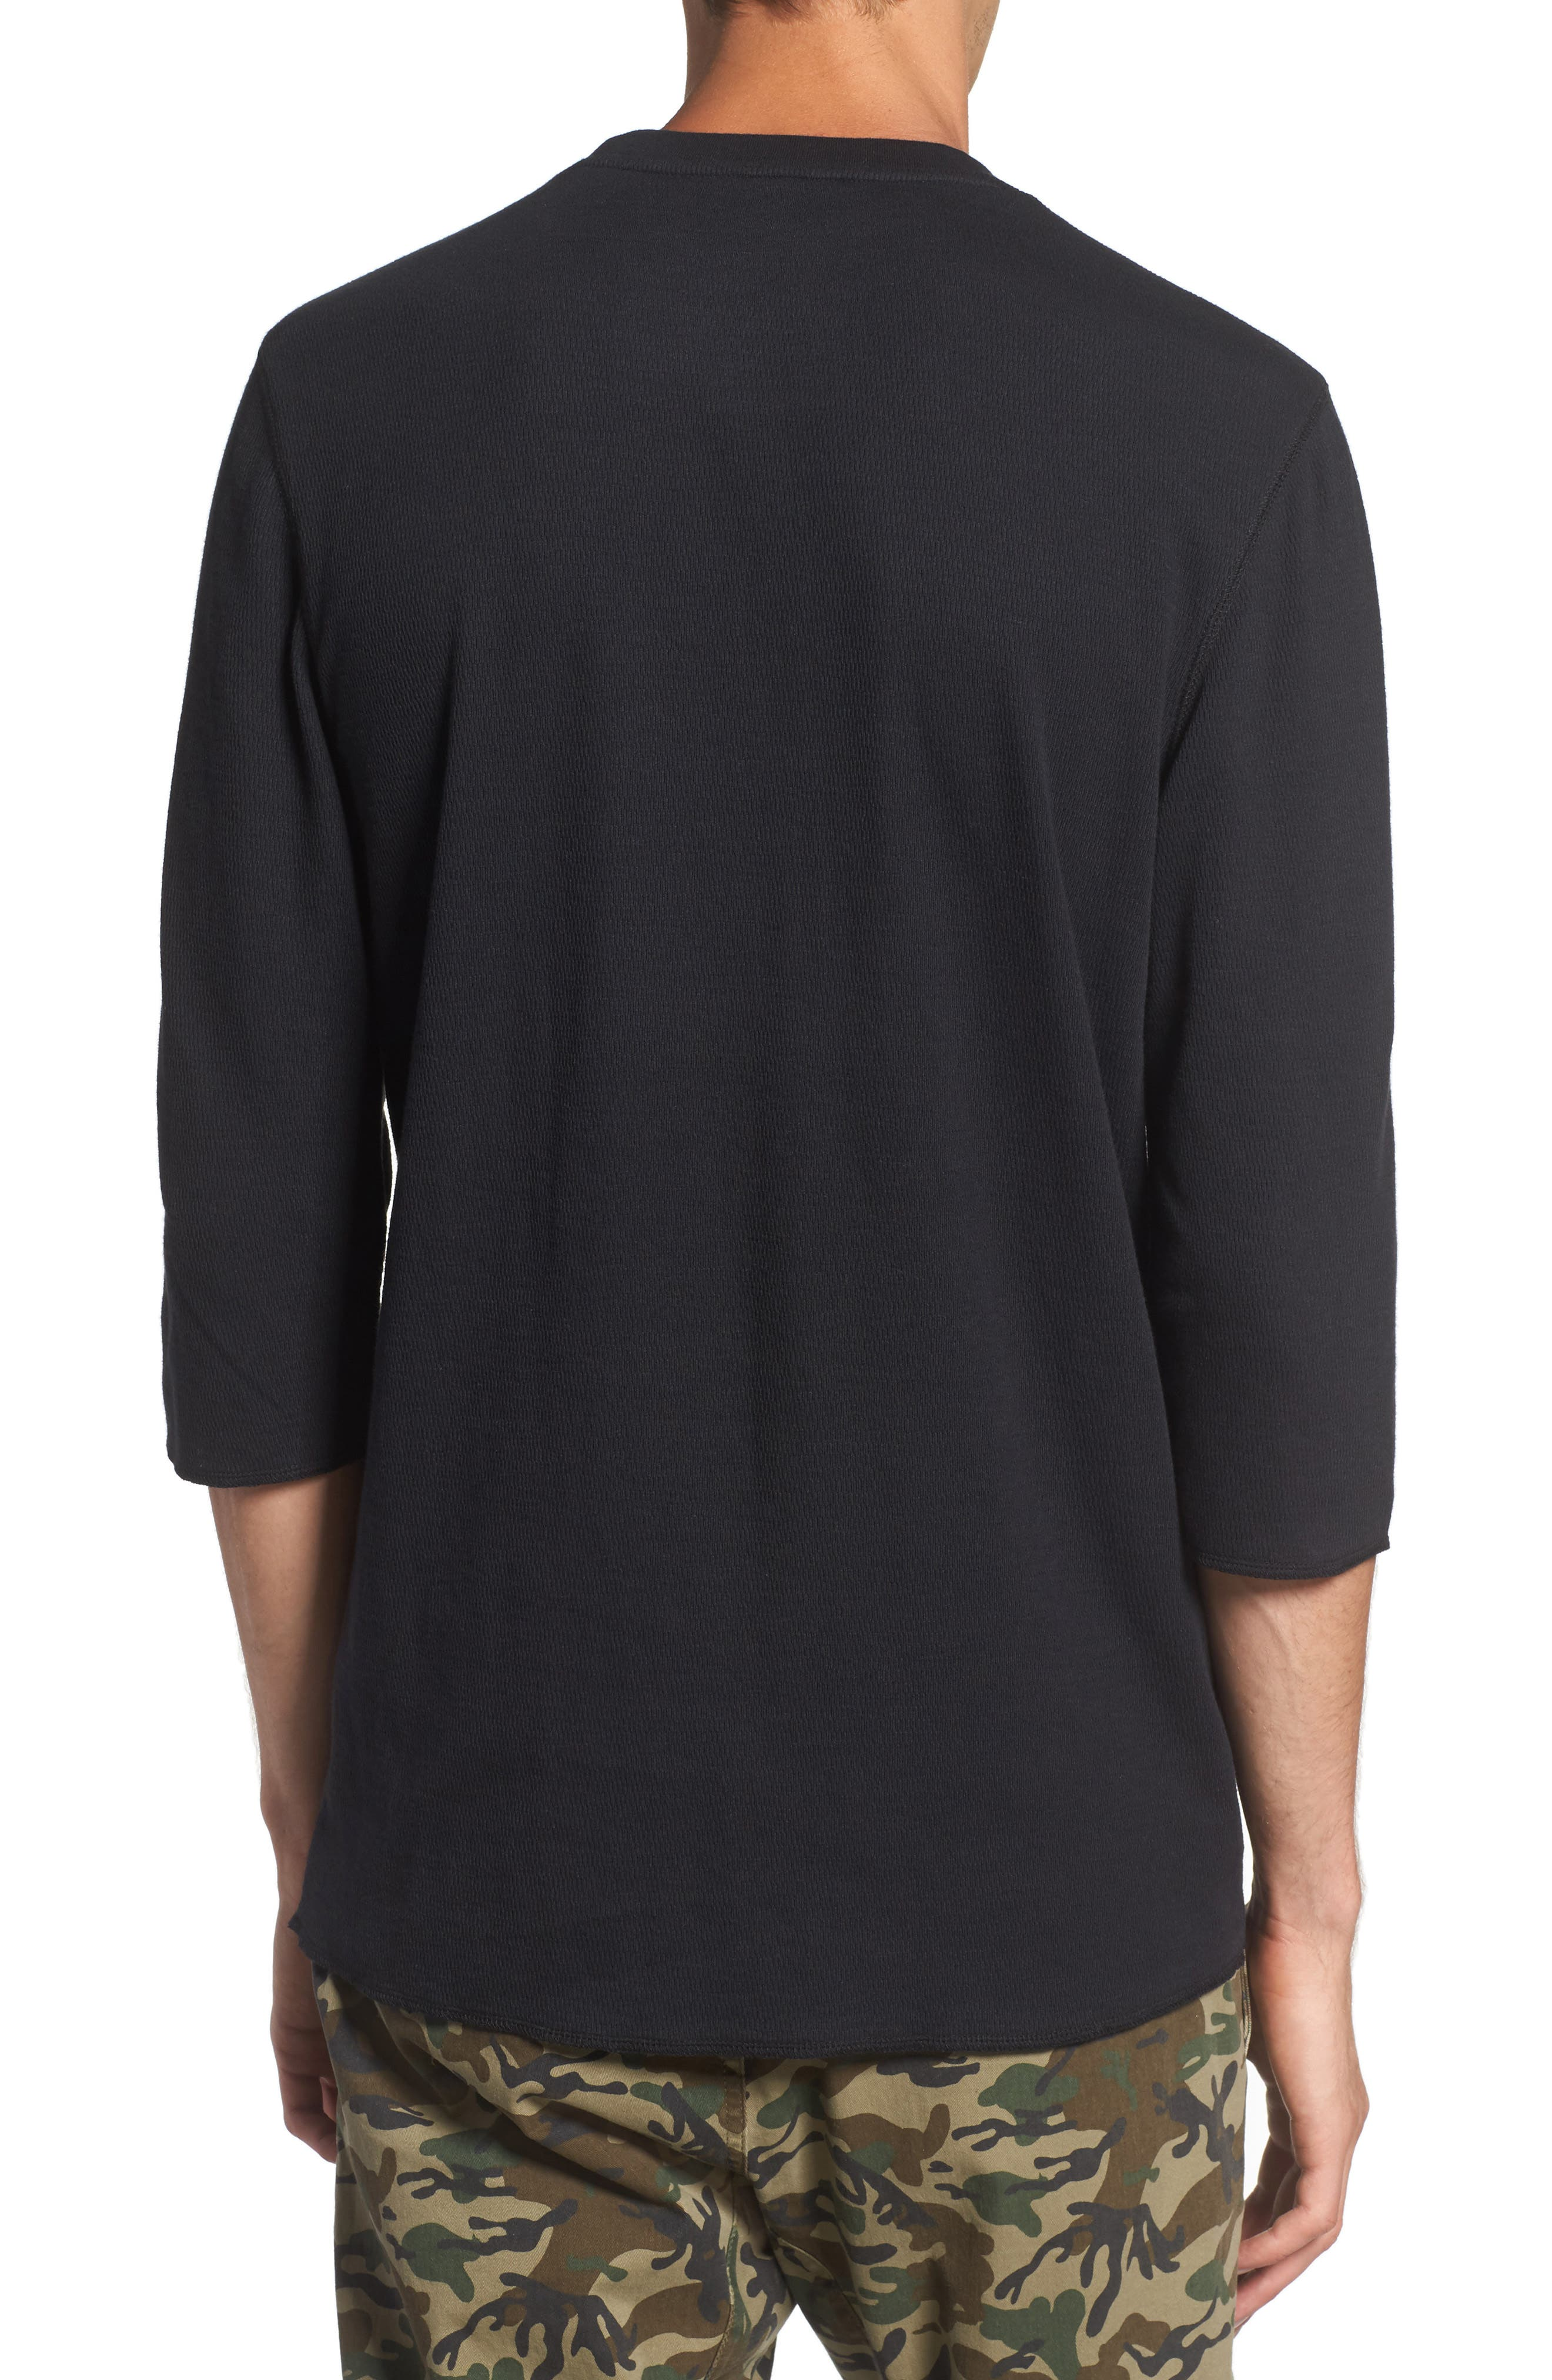 Alternate Image 2  - The Rail Three-Quarter-Sleeve Thermal T-Shirt